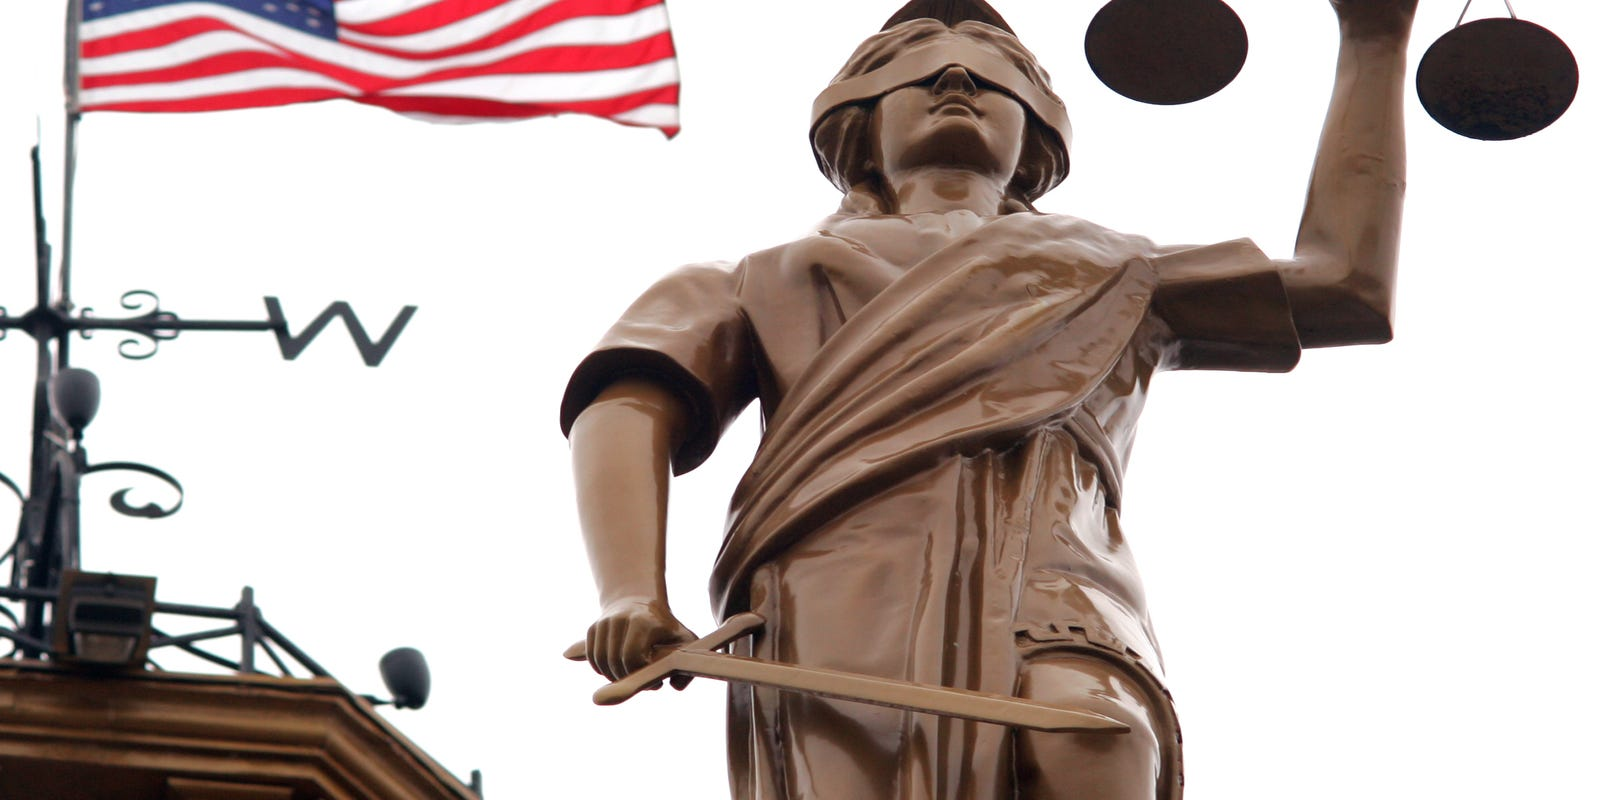 Six sentenced on theft charges in Licking County Municipal Court